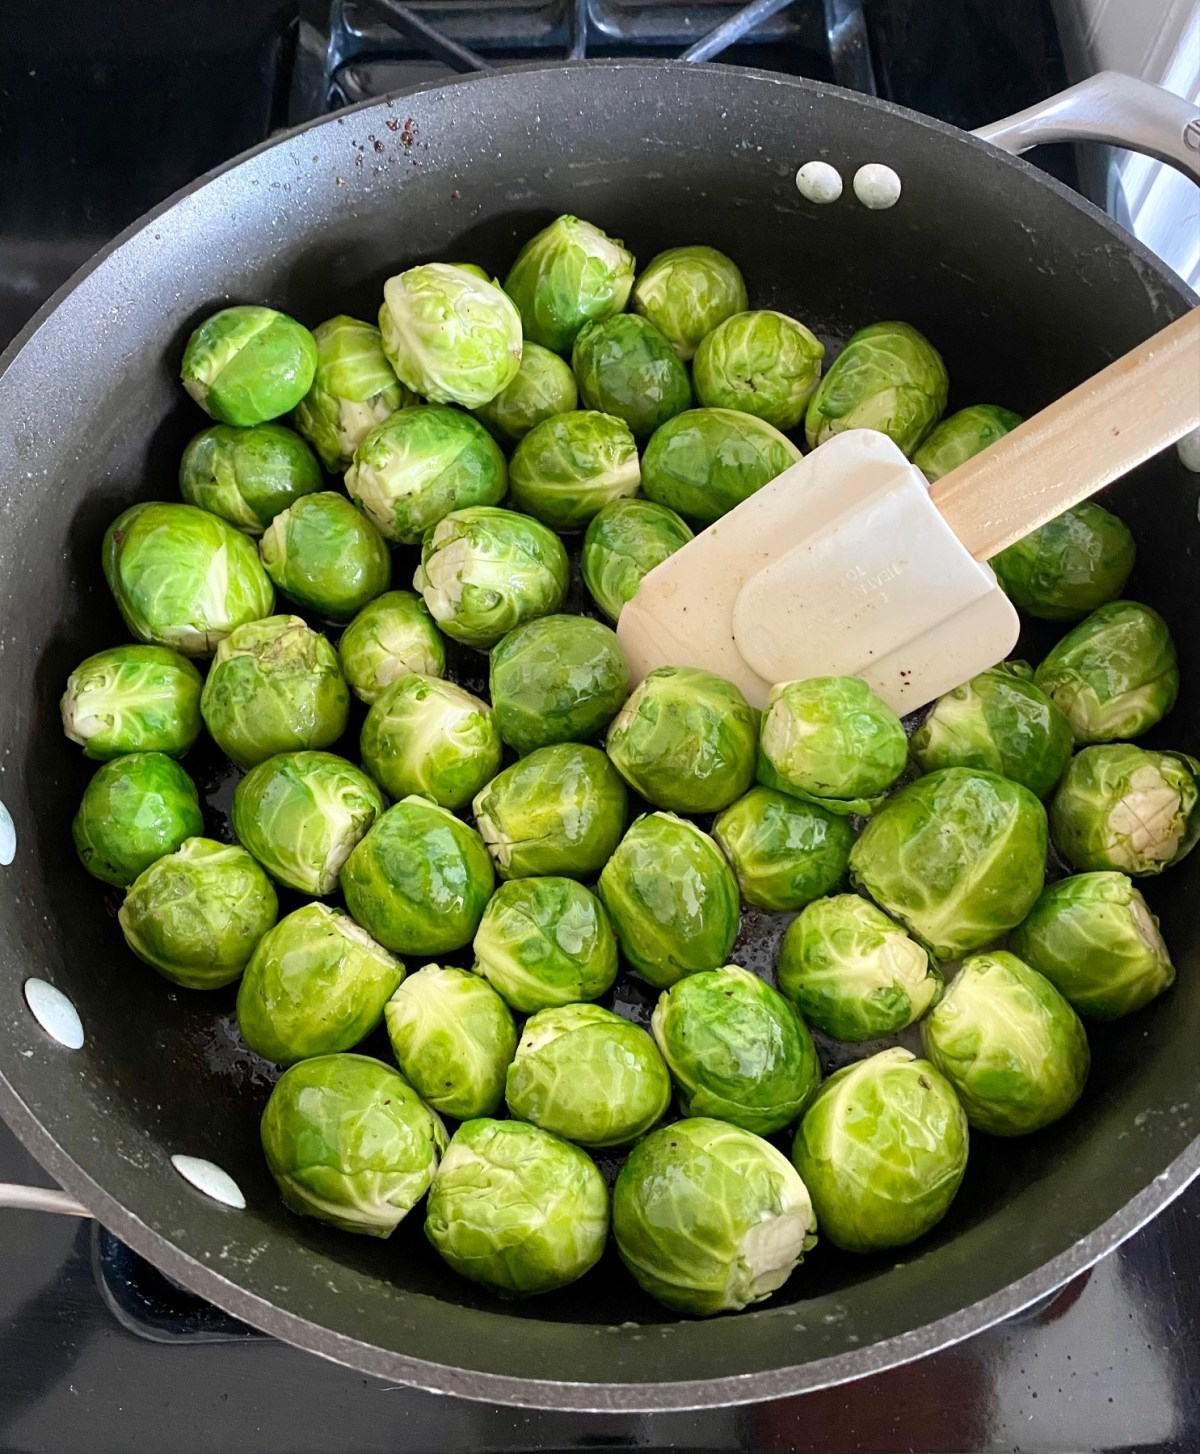 Brussels sprouts cooking in butter in a large skillet over medium heat. #maplebaconbrusselssprouts #brusselssprouts #holidaysidedish #dinnerrecipes #dinnerideas #healthyrecipes #healthydinnerrecipes